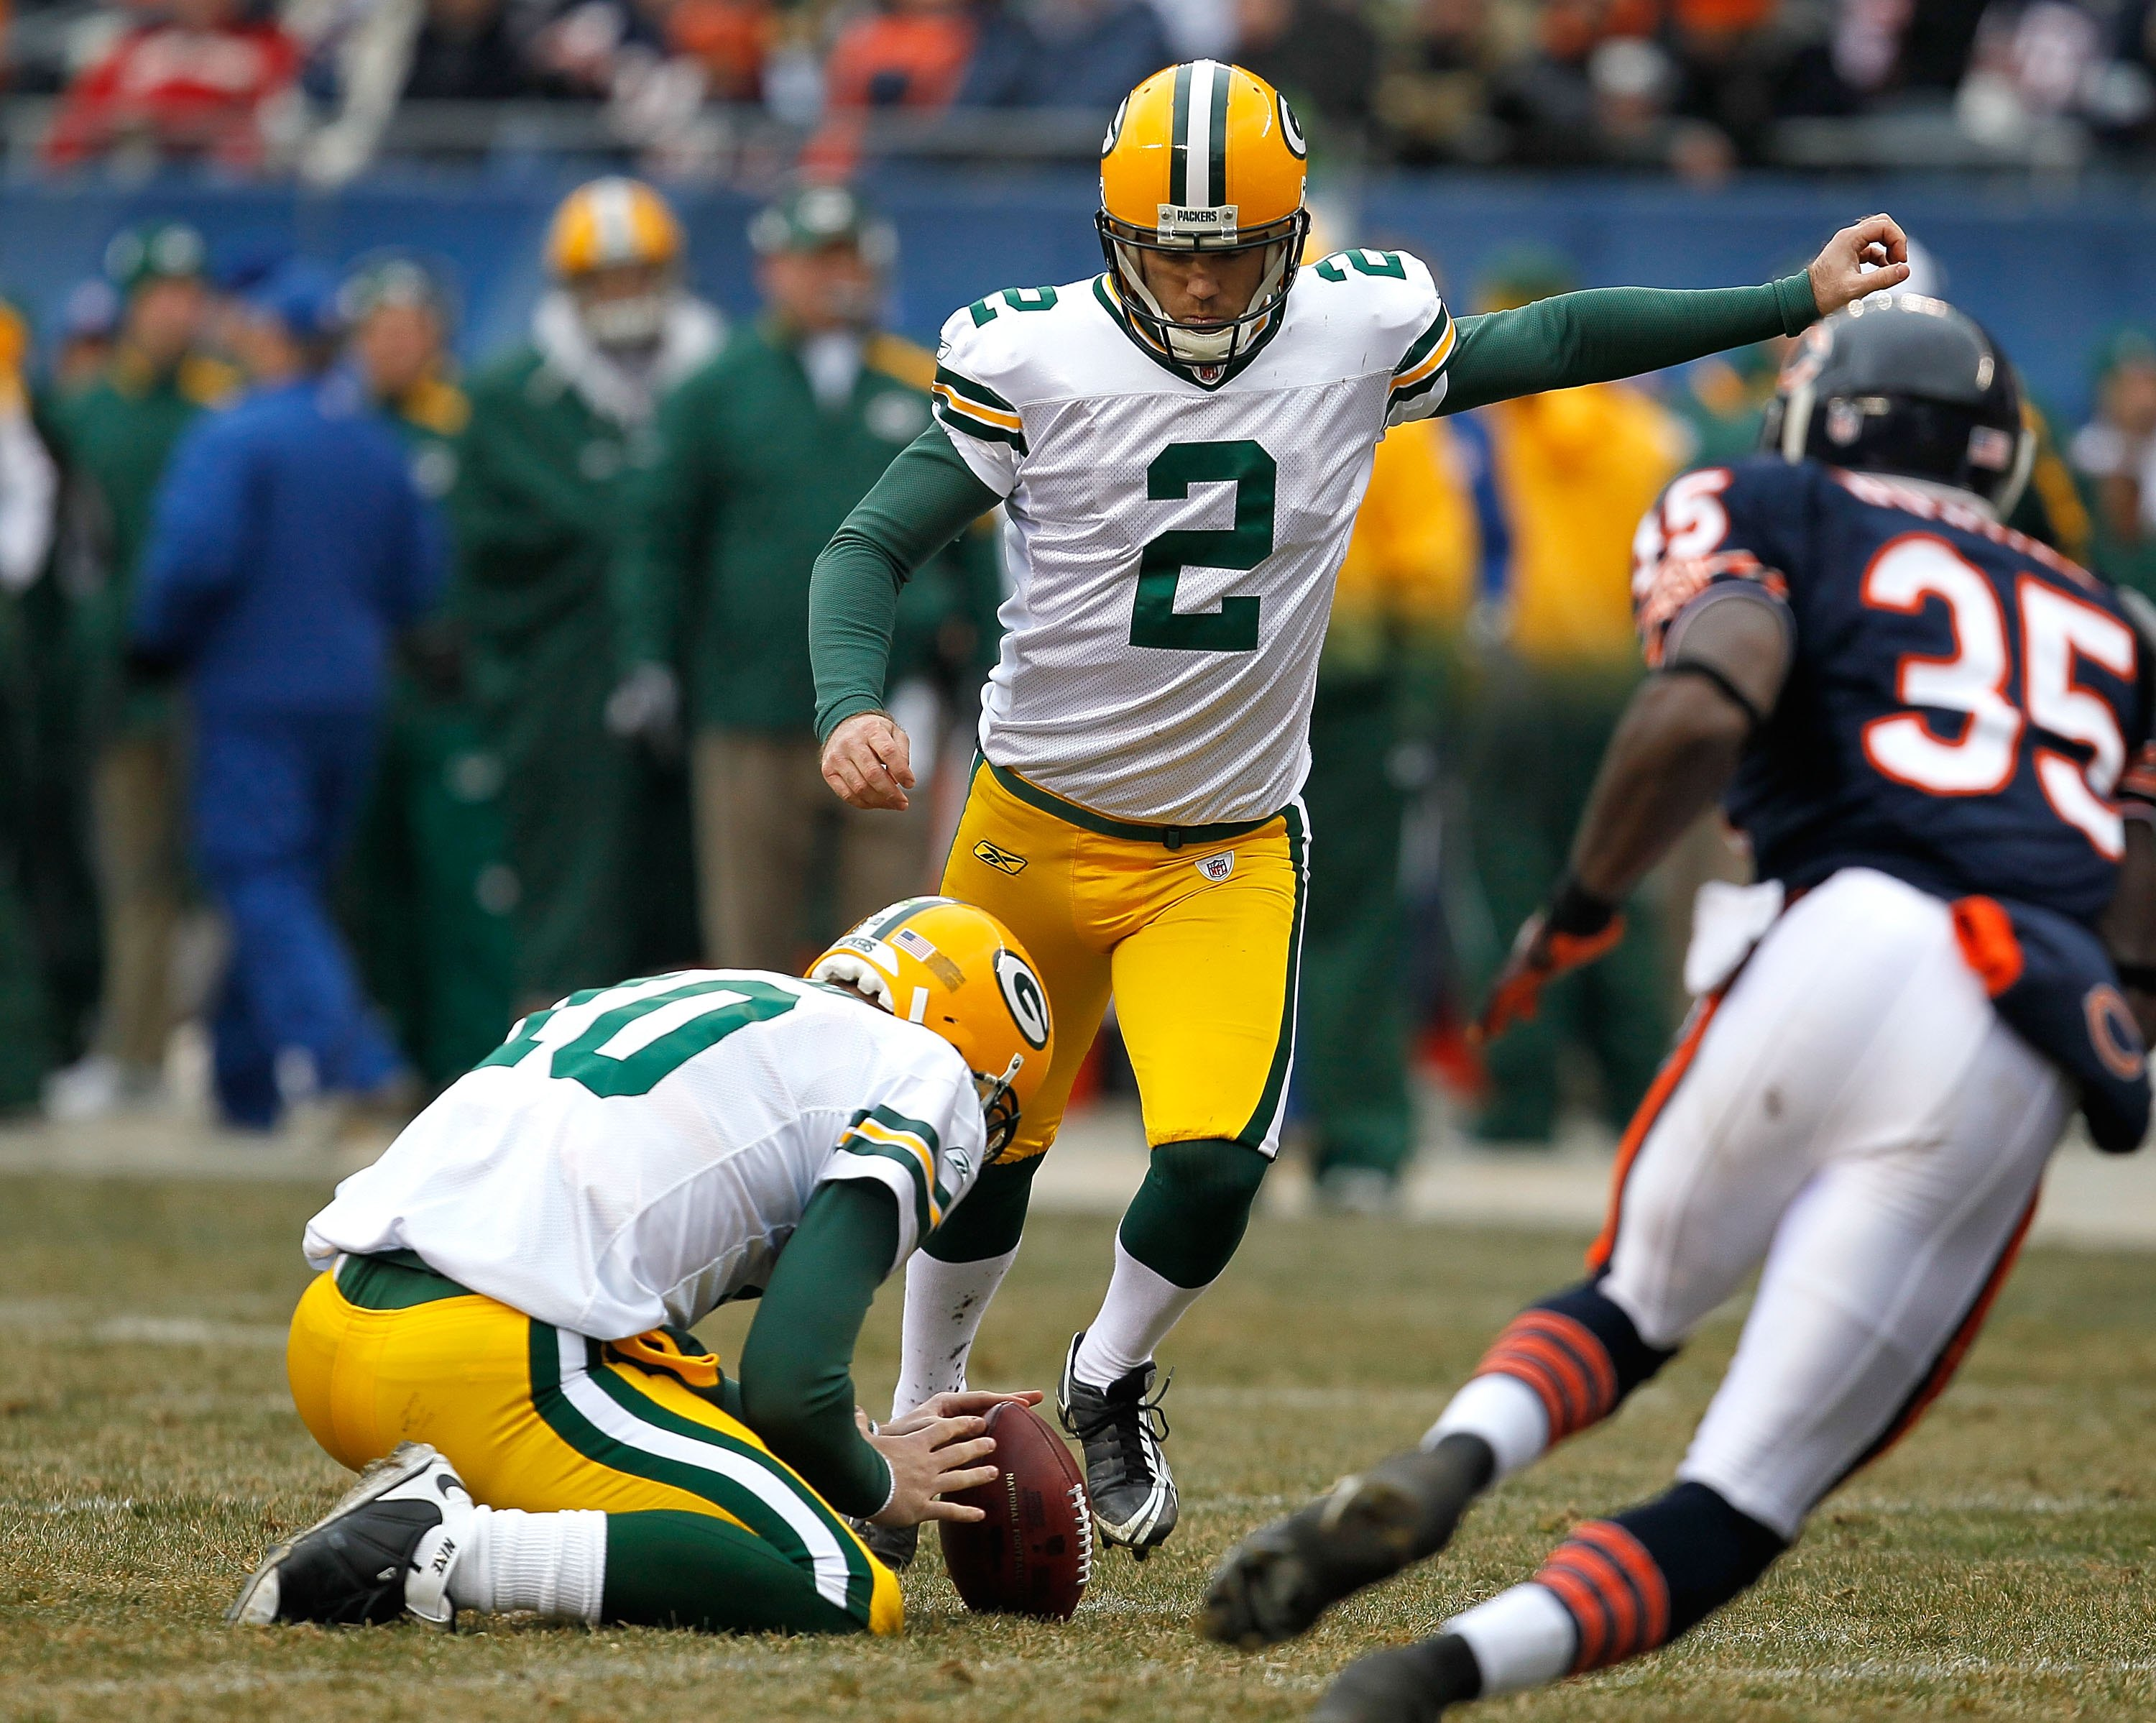 CHICAGO - DECEMBER 13: Mason Crosby #2 of the Green Bay Packers kicks an extra point out of the hold of Matt Flynn #10 against the Chicago Bears at Soldier Field on December 13, 2009 in Chicago, Illinois. The Packers defeated the Bears 21-14. (Photo by Jo